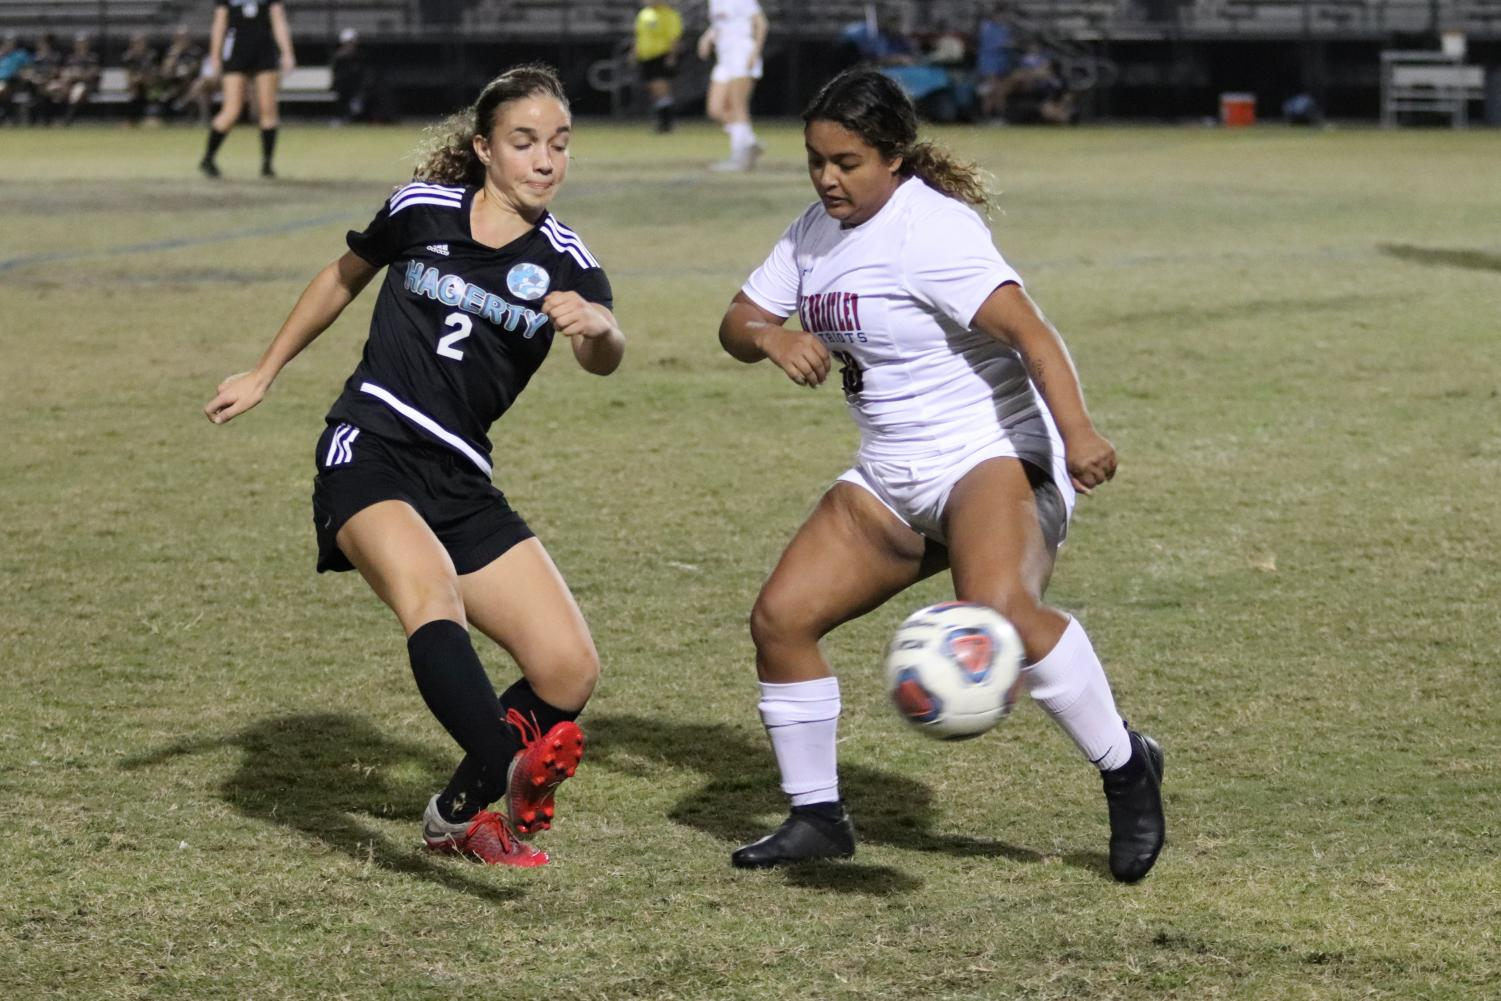 Midfielder Rachel Pyros passes the ball around a Lake Brantley defender in the first half of the Dec. 10 soccer match. The team lost the match 3-0.